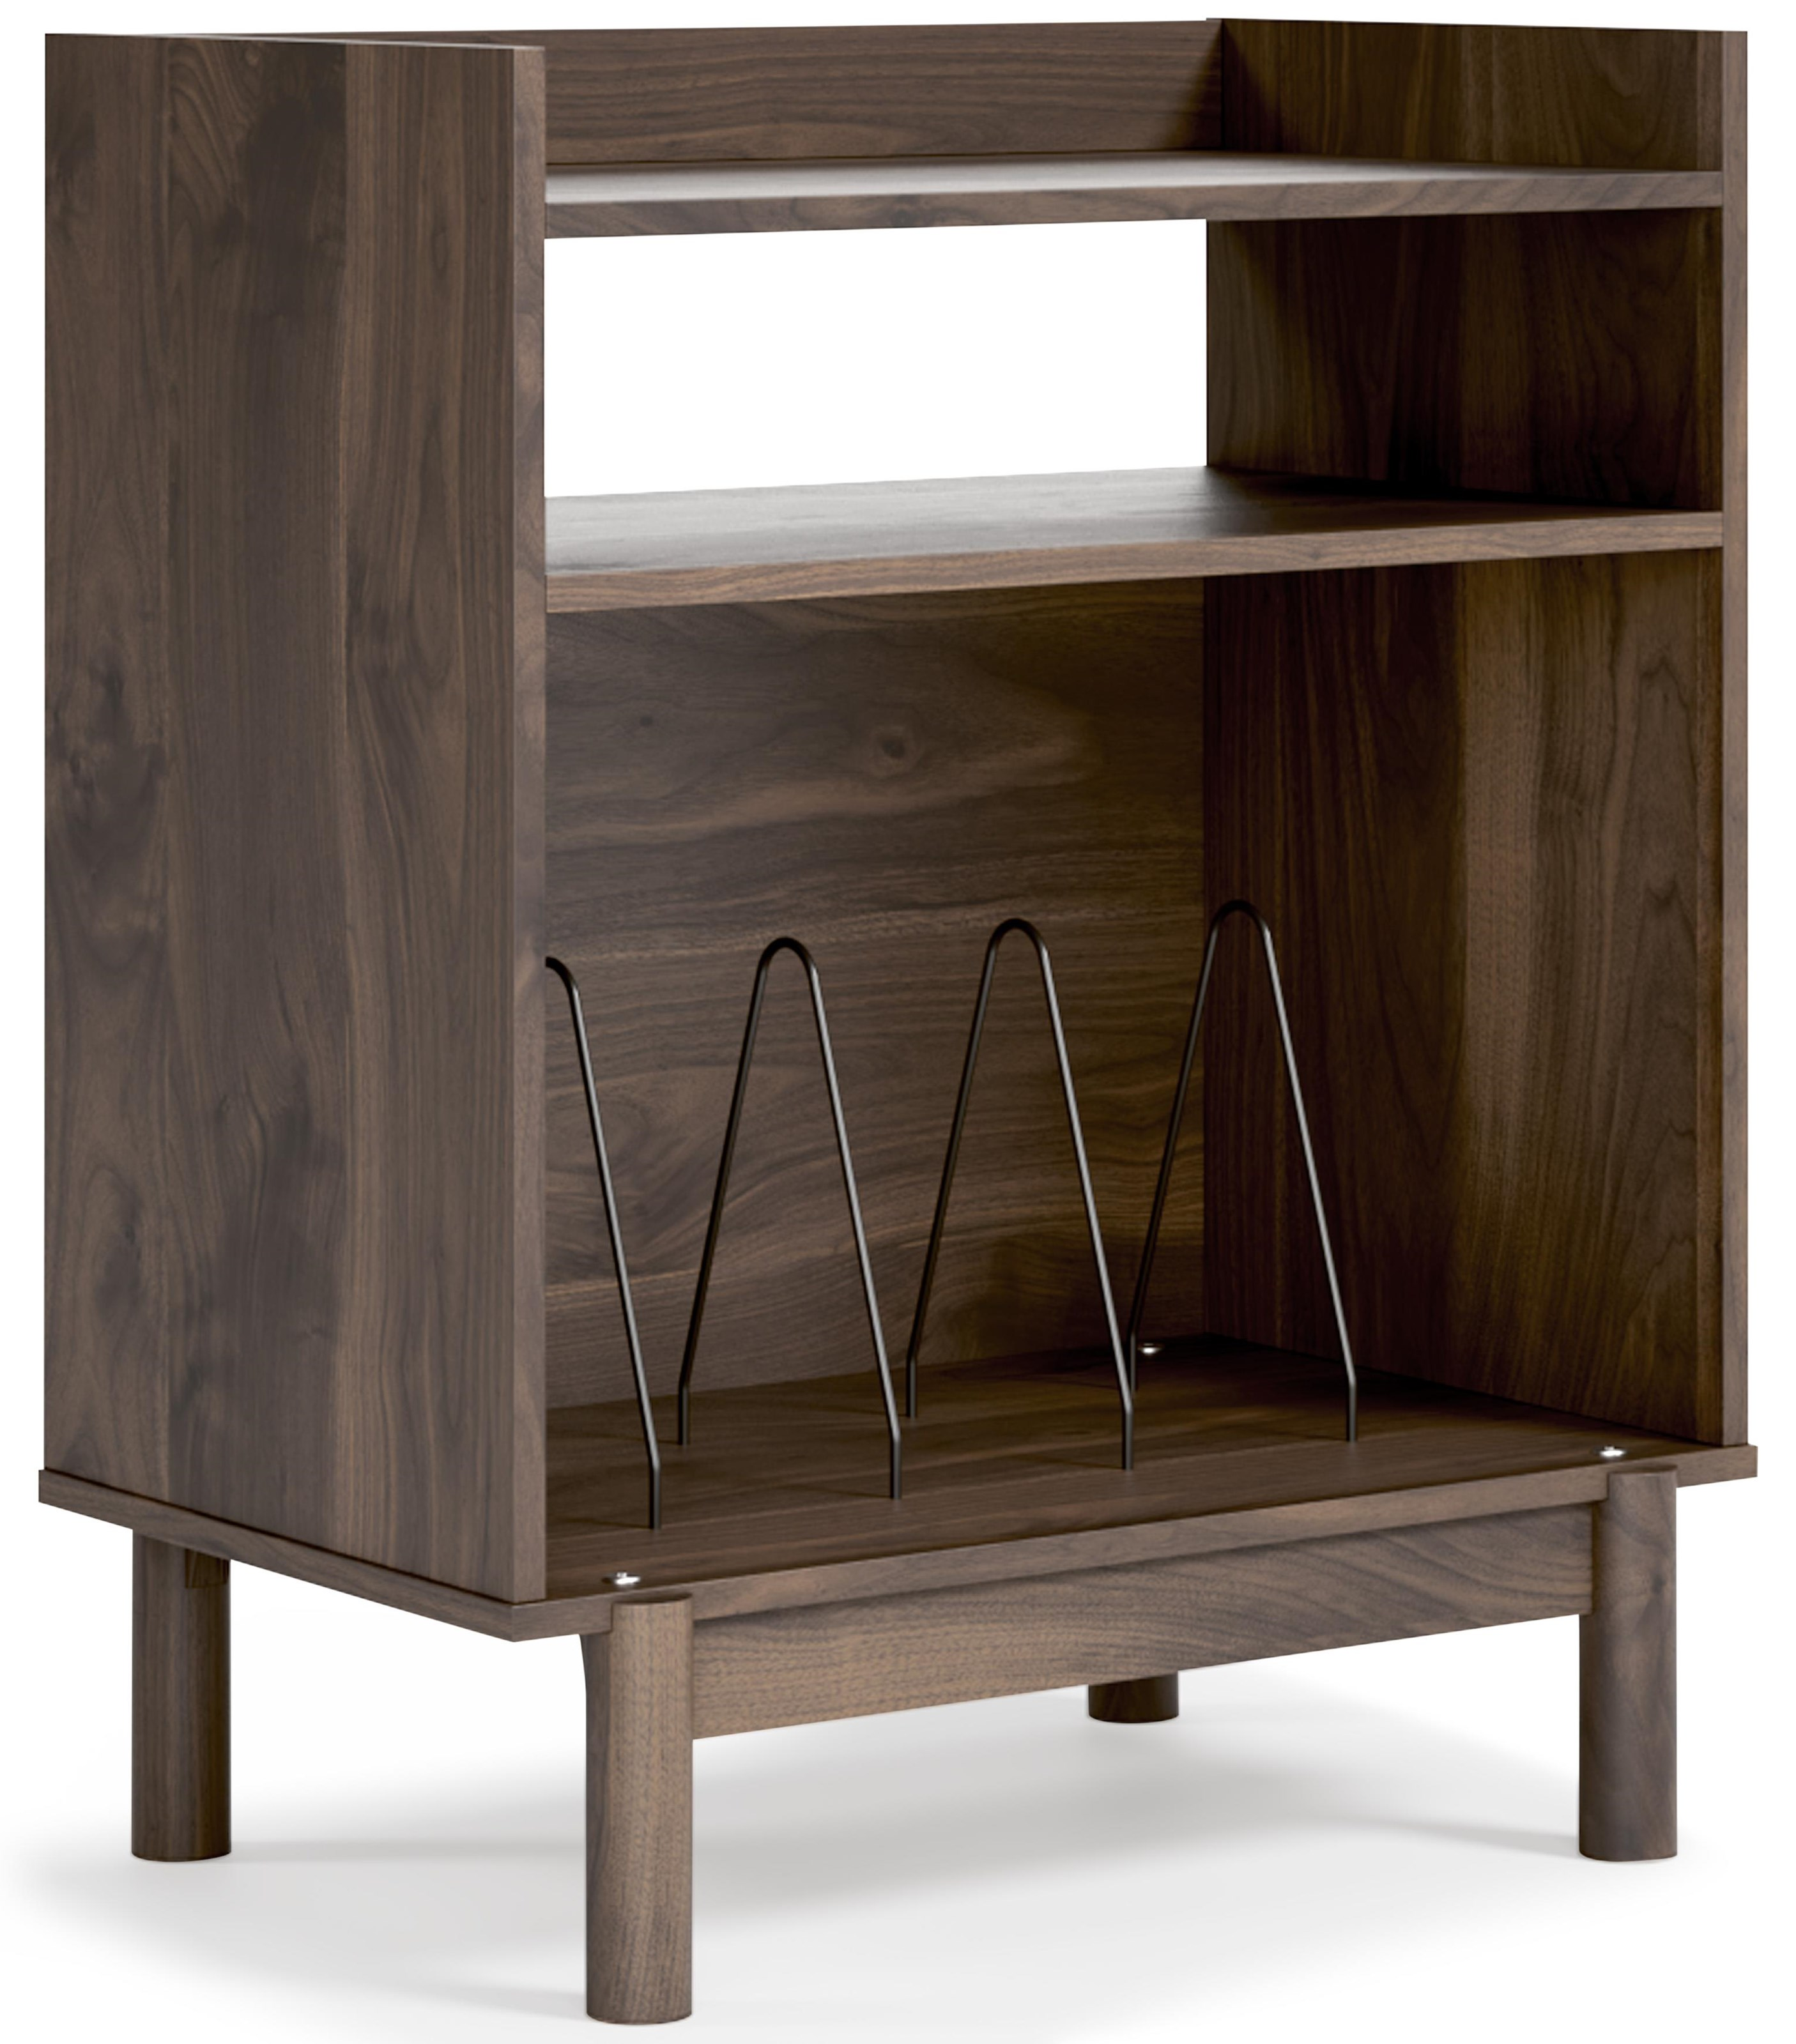 Calverson Turntable And Album Console by Signature Design by Ashley at Sam Levitz Furniture